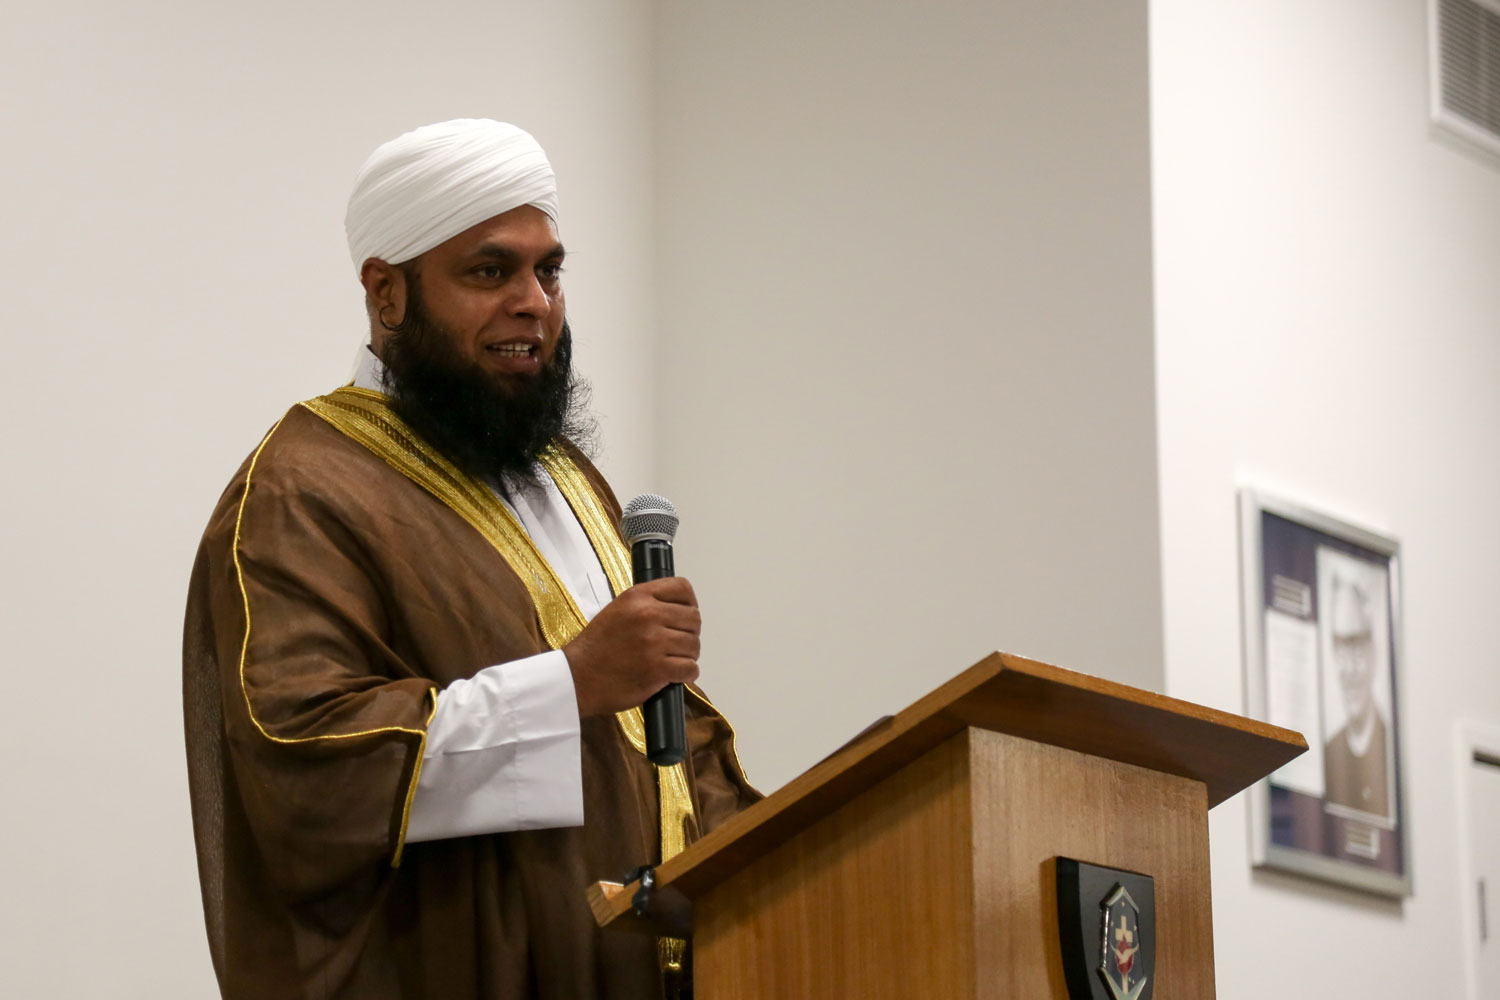 Imam Abdullah Salik wears prayer robes and holds a microphone while standing at a lectern